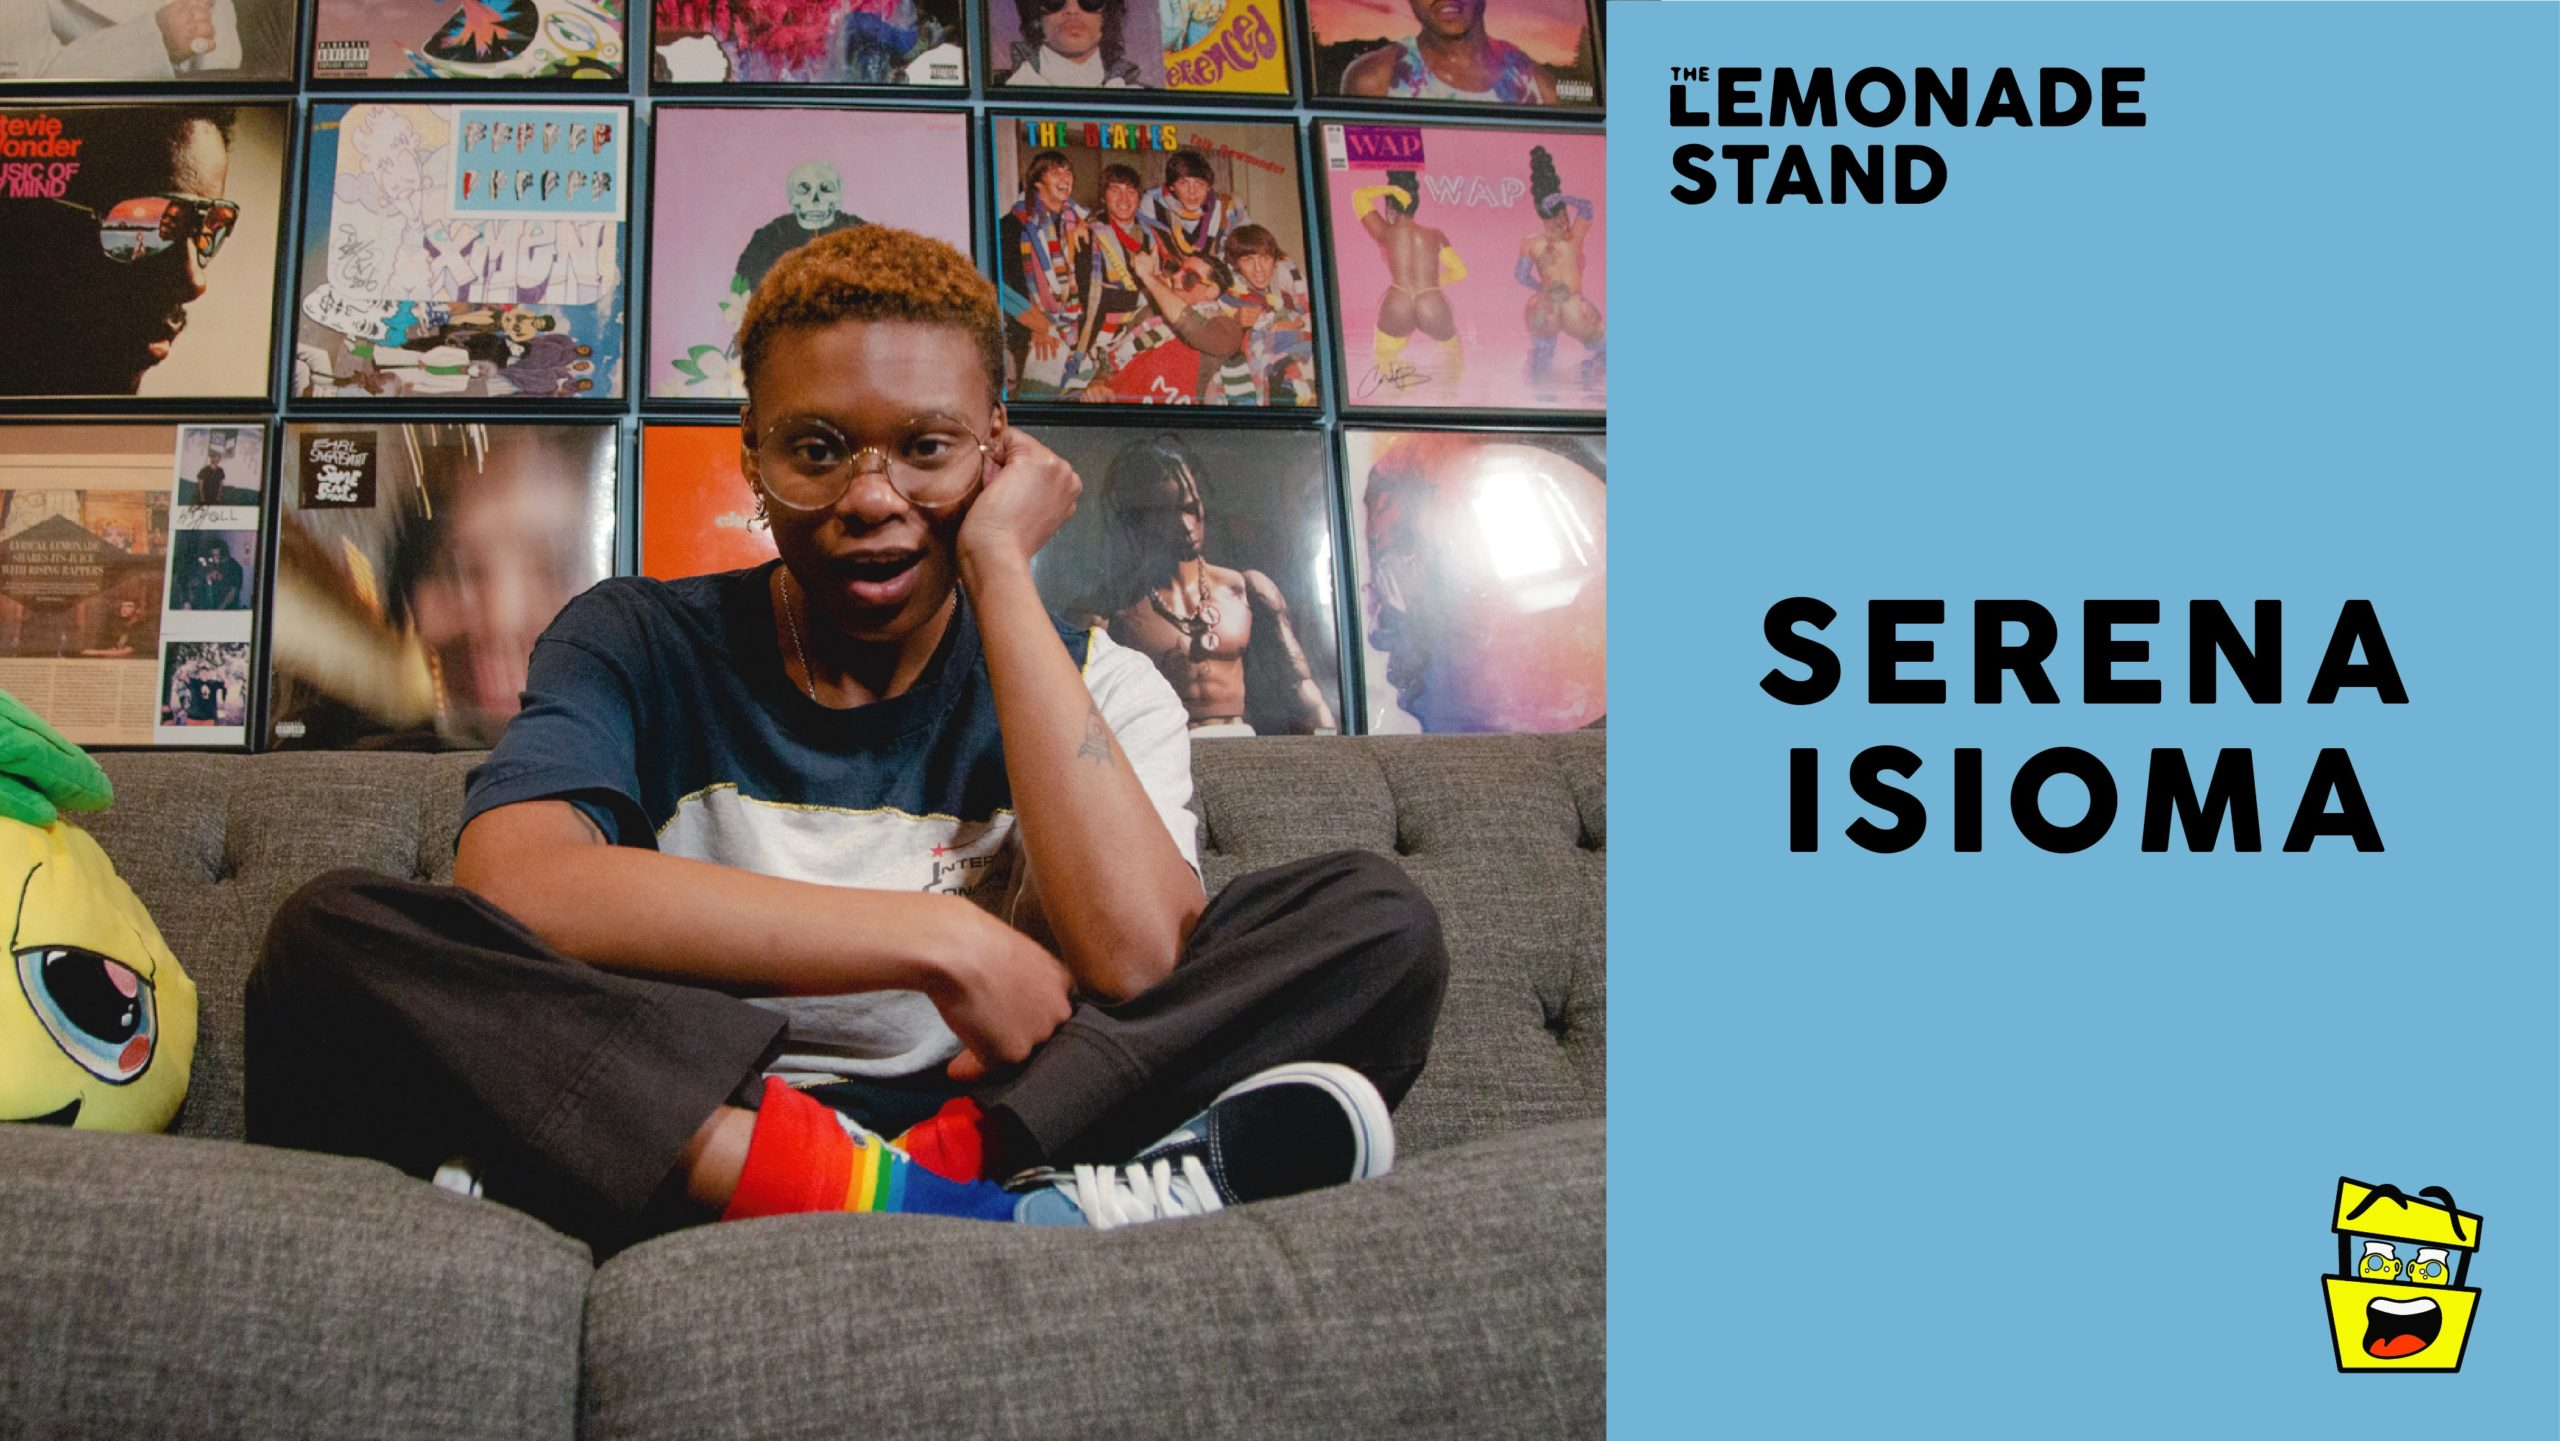 Serena Isioma: The Lemonade Stand Interview